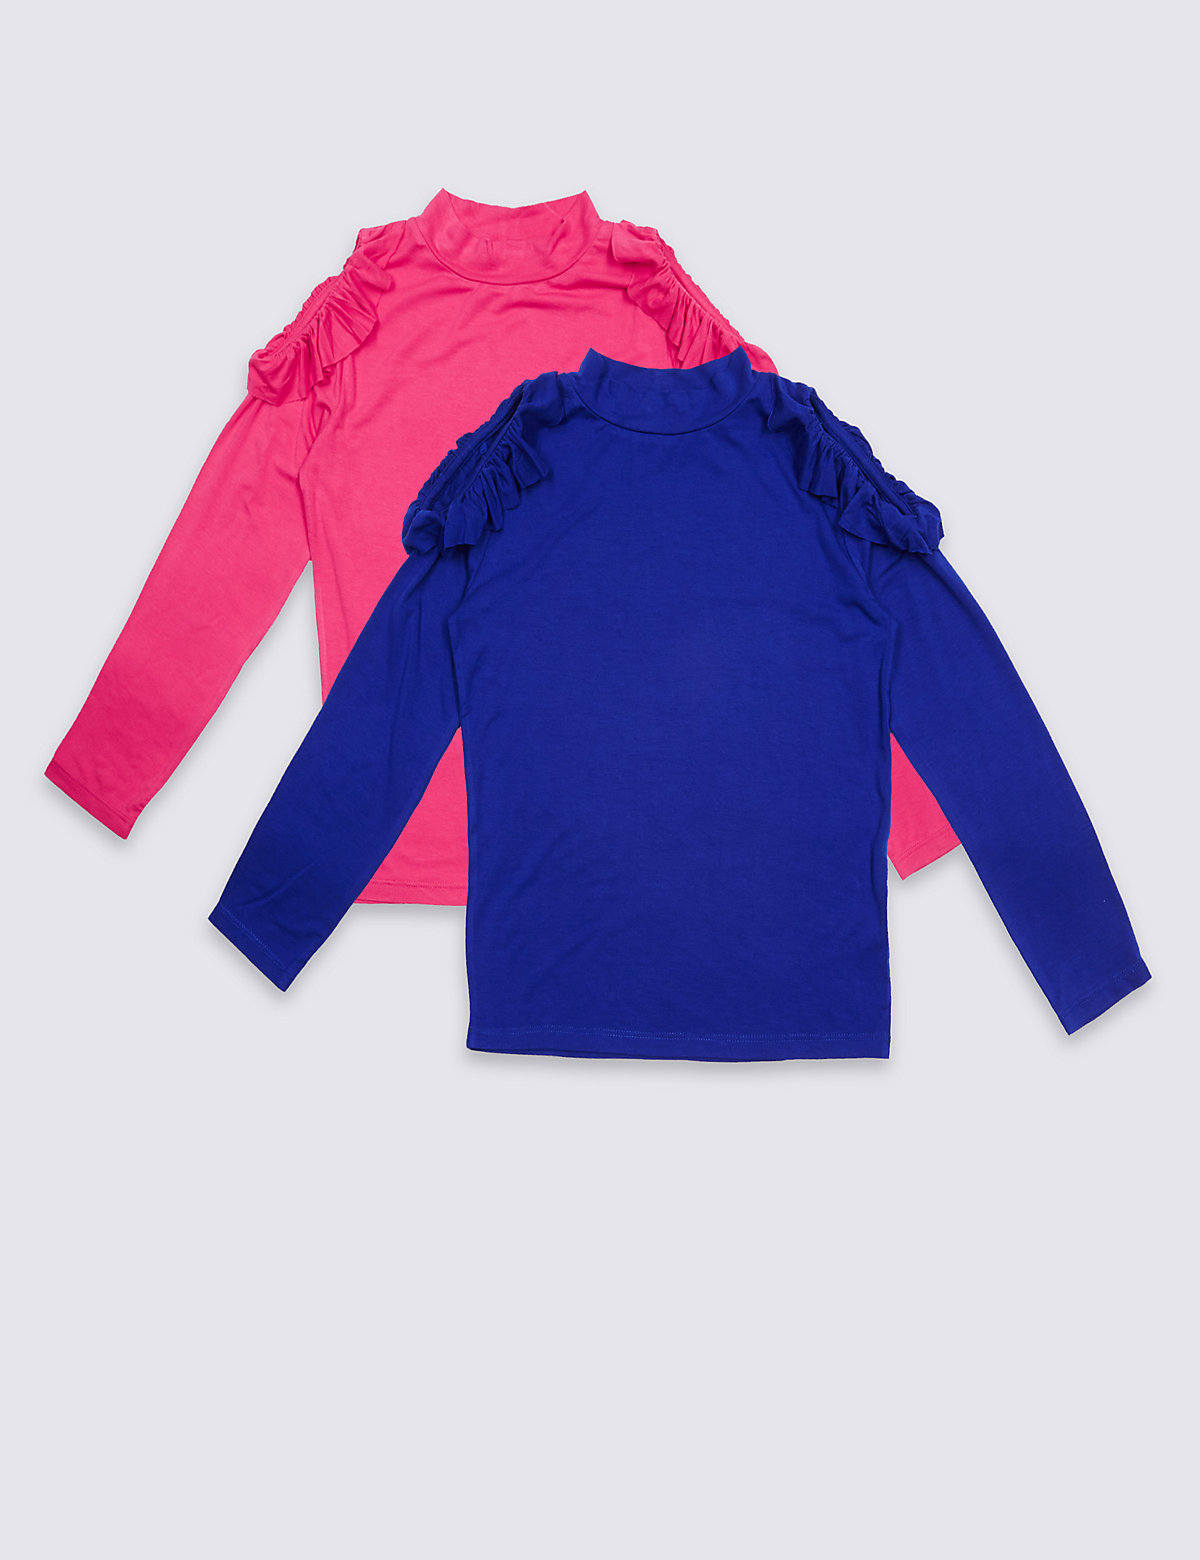 2 Pack Long Sleeve Jersey Tops (3-14 Years).